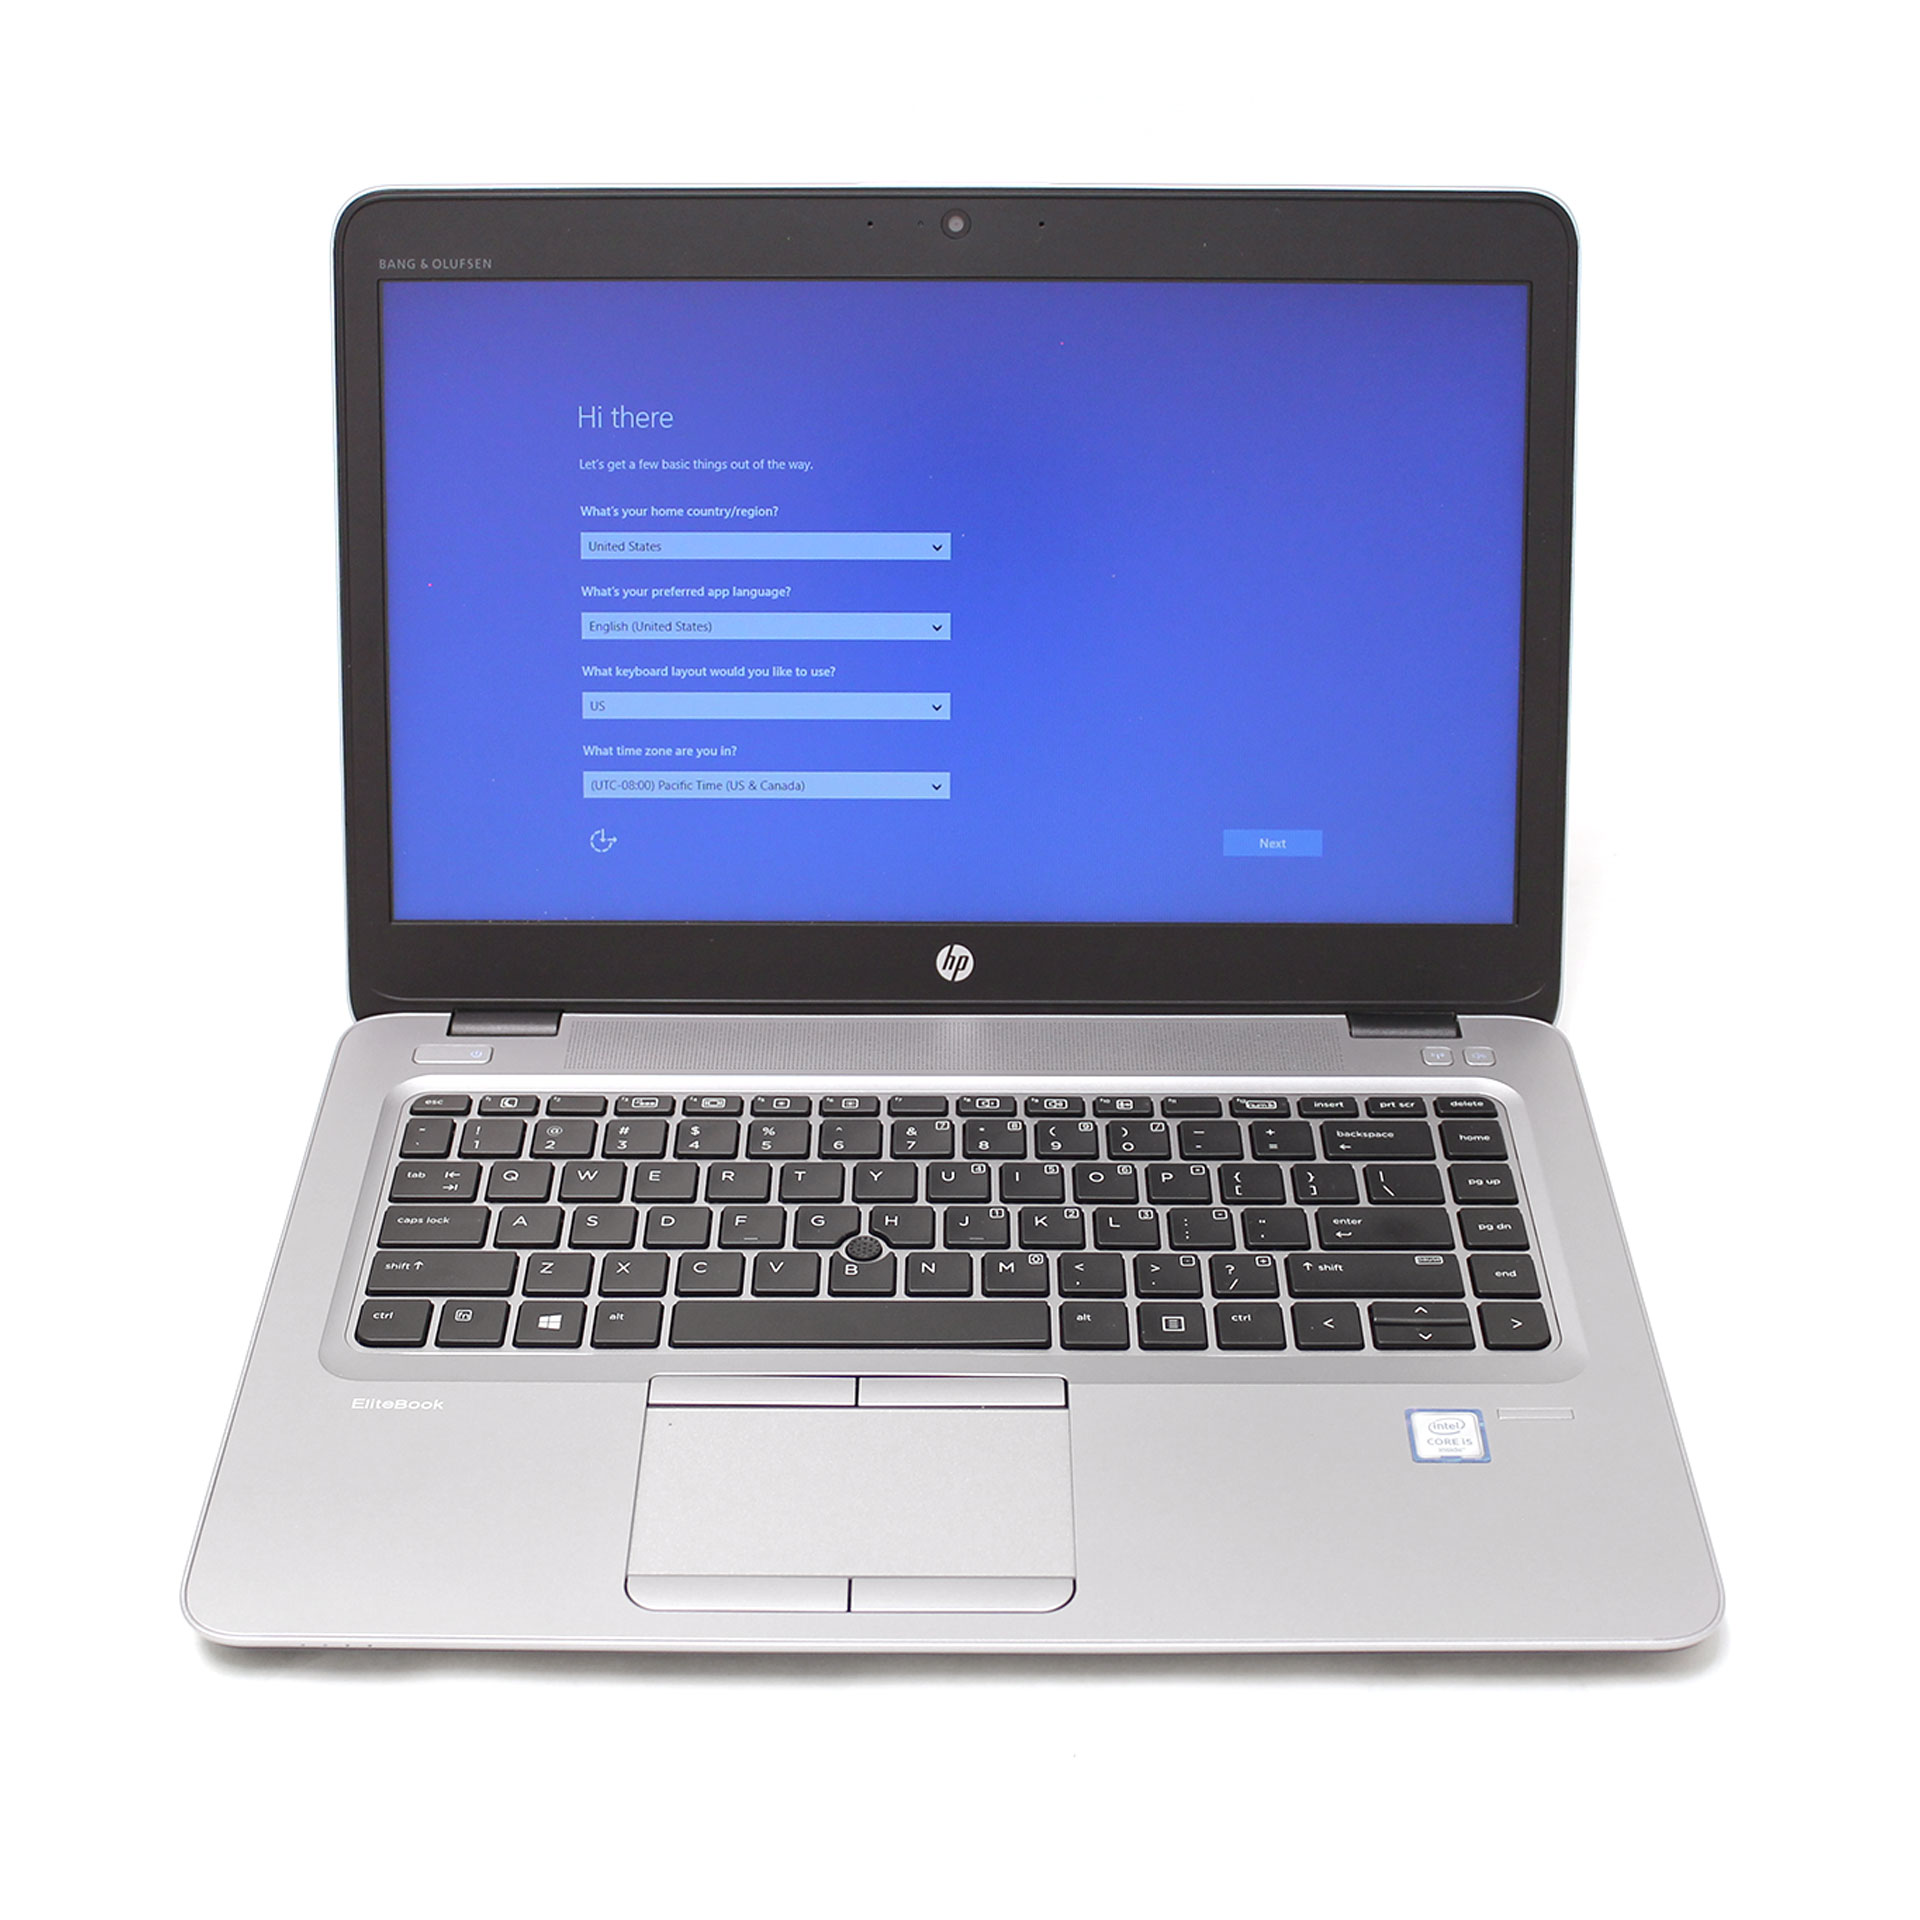 HP EliteBook 840 G3 Core i5-6200U 2.3GHz RAM 8GB SSD 256GB 14""